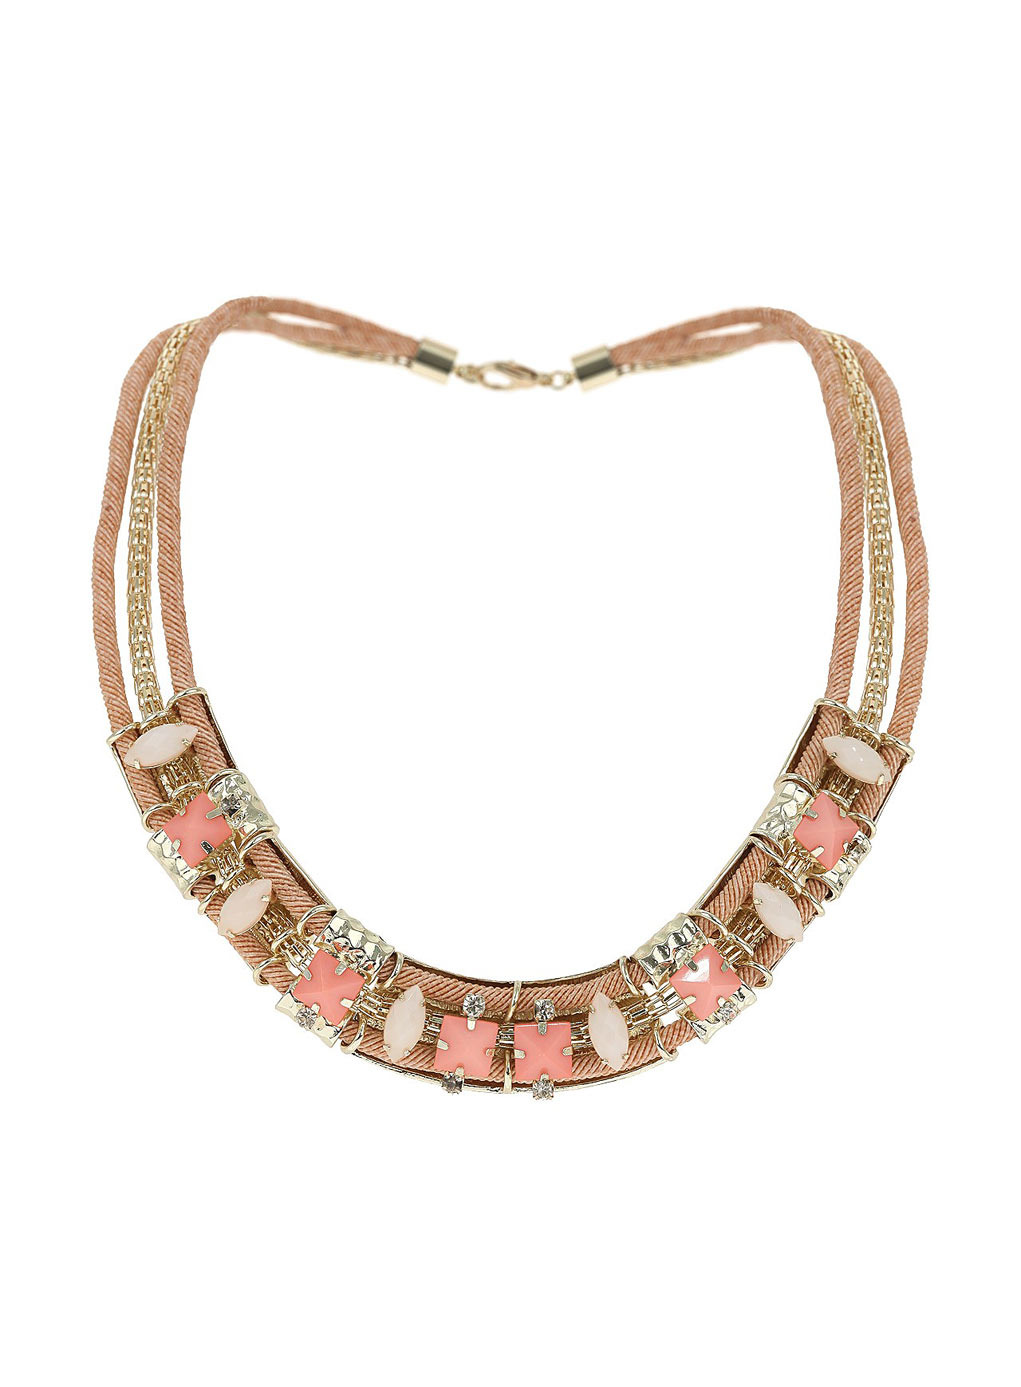 Pink Stone Statement Necklace - predominant colour: camel; secondary colour: nude; occasions: casual, evening, occasion, holiday, creative work; length: short; size: large/oversized; finish: plain; material: macrame/raffia/straw; embellishment: jewels/stone; style: bib/statement; season: s/s 2014